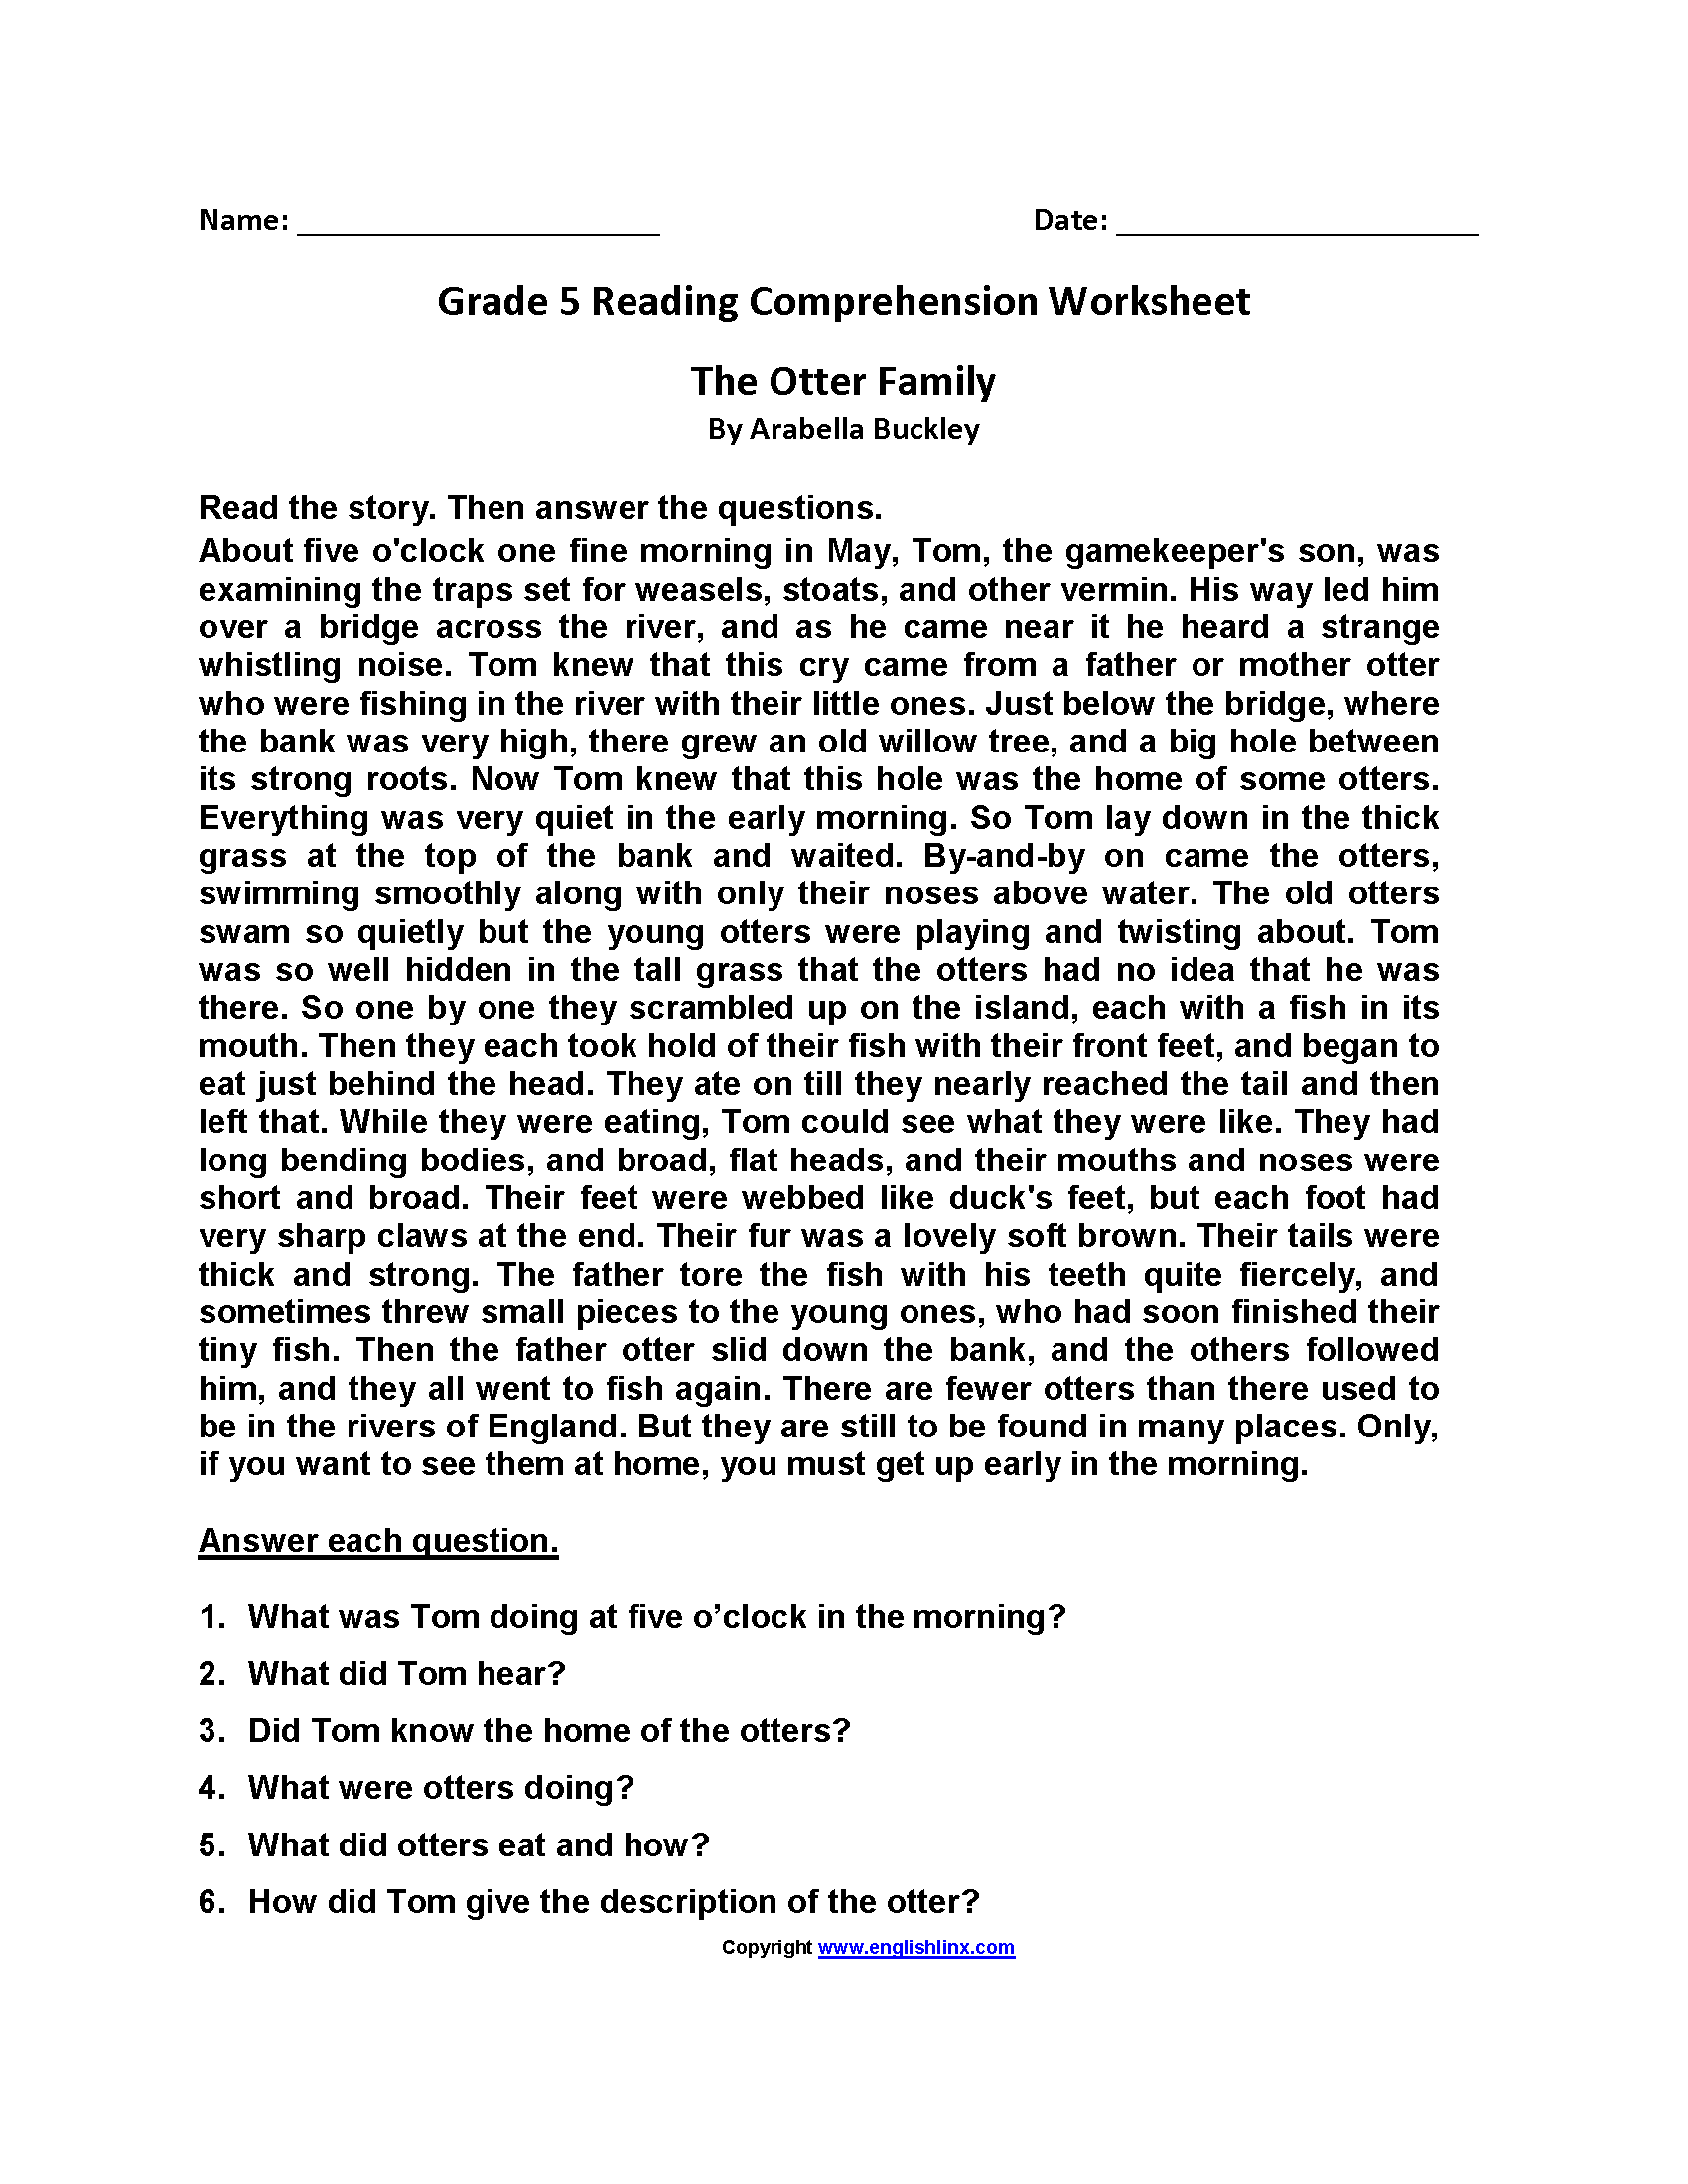 Printables Of Grade 5 Reading